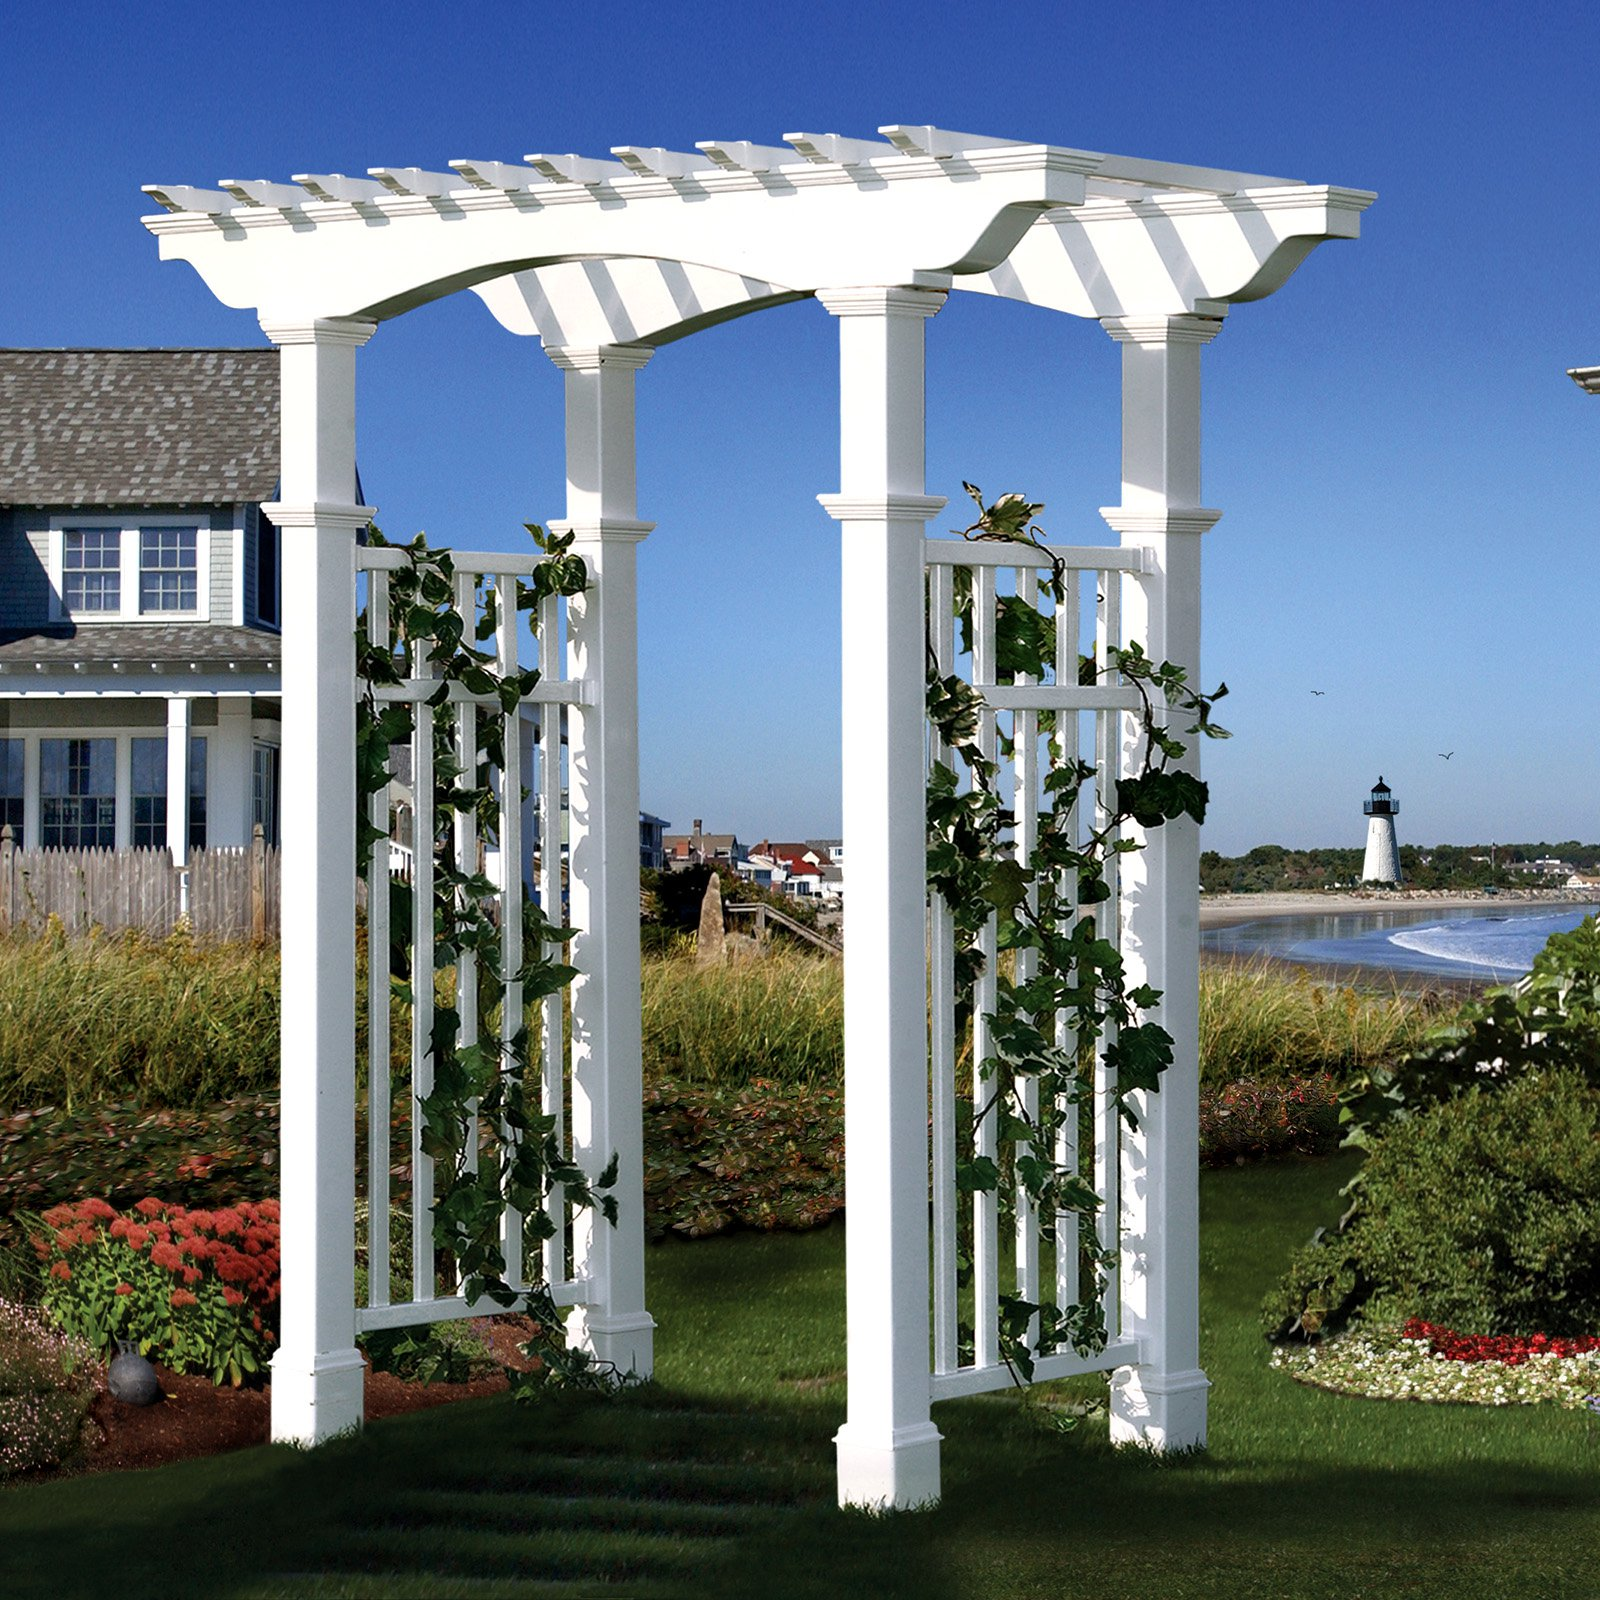 New England Arbors Newport 7.75-ft. Vinyl Pergola Arbor by New England Arbors